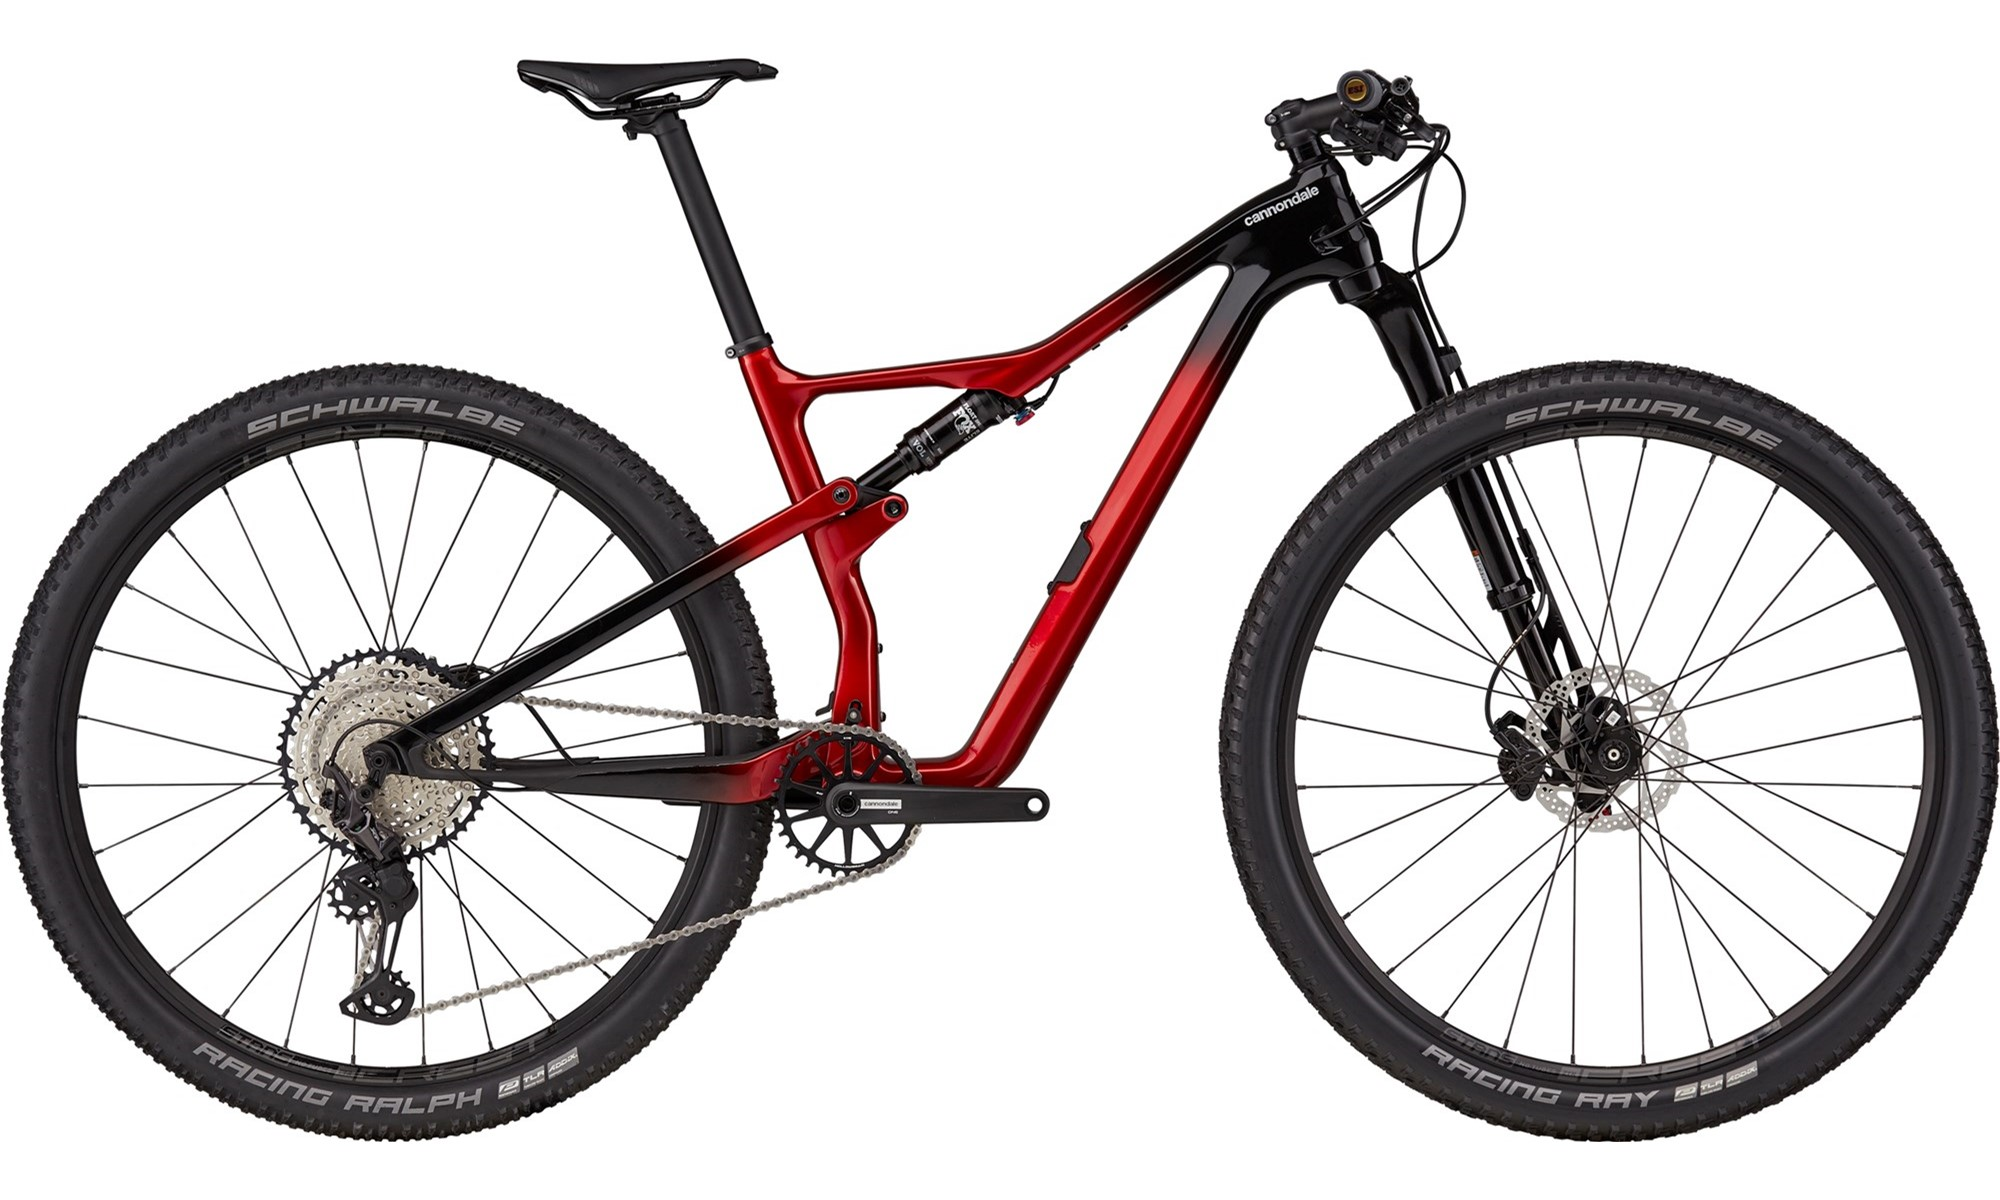 Cannondale Scalpel Carbon 3 29er Mountain Bike 2021 Candy Red